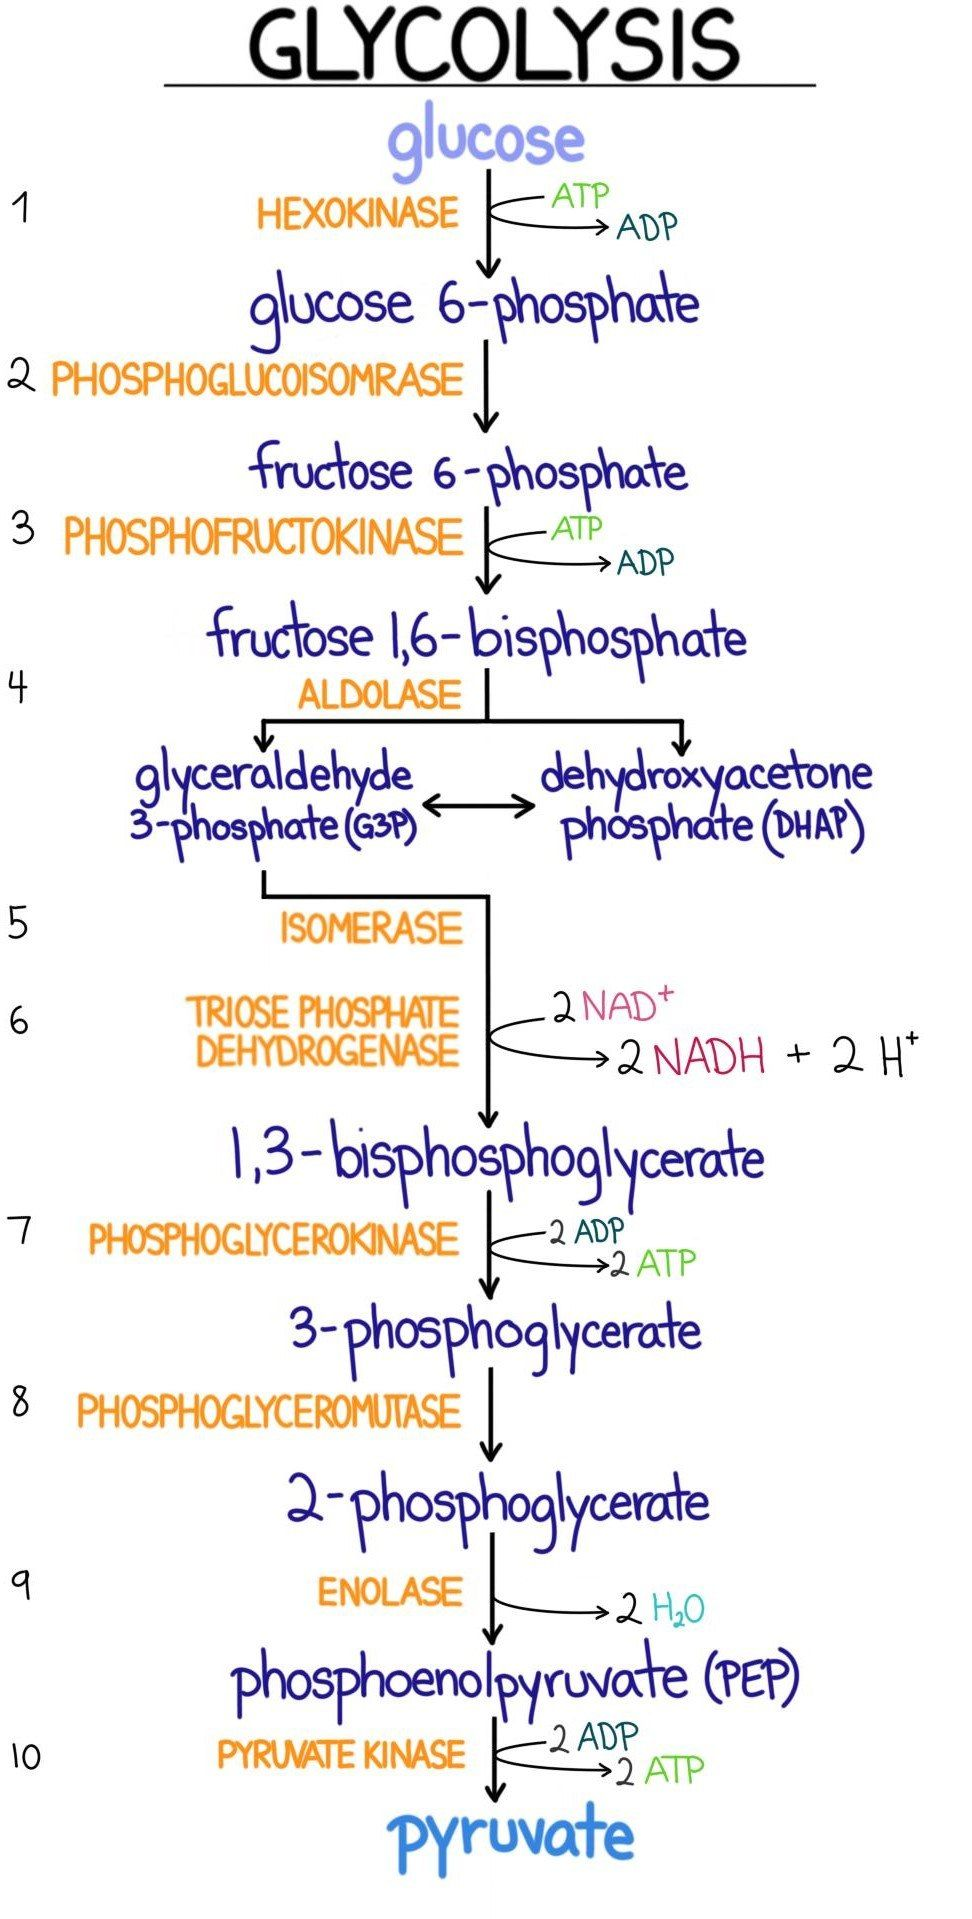 Glycolysis Introduction Pathway Diagram Summary In 2020 Biology Lessons Medical School Essentials Medical Student Study